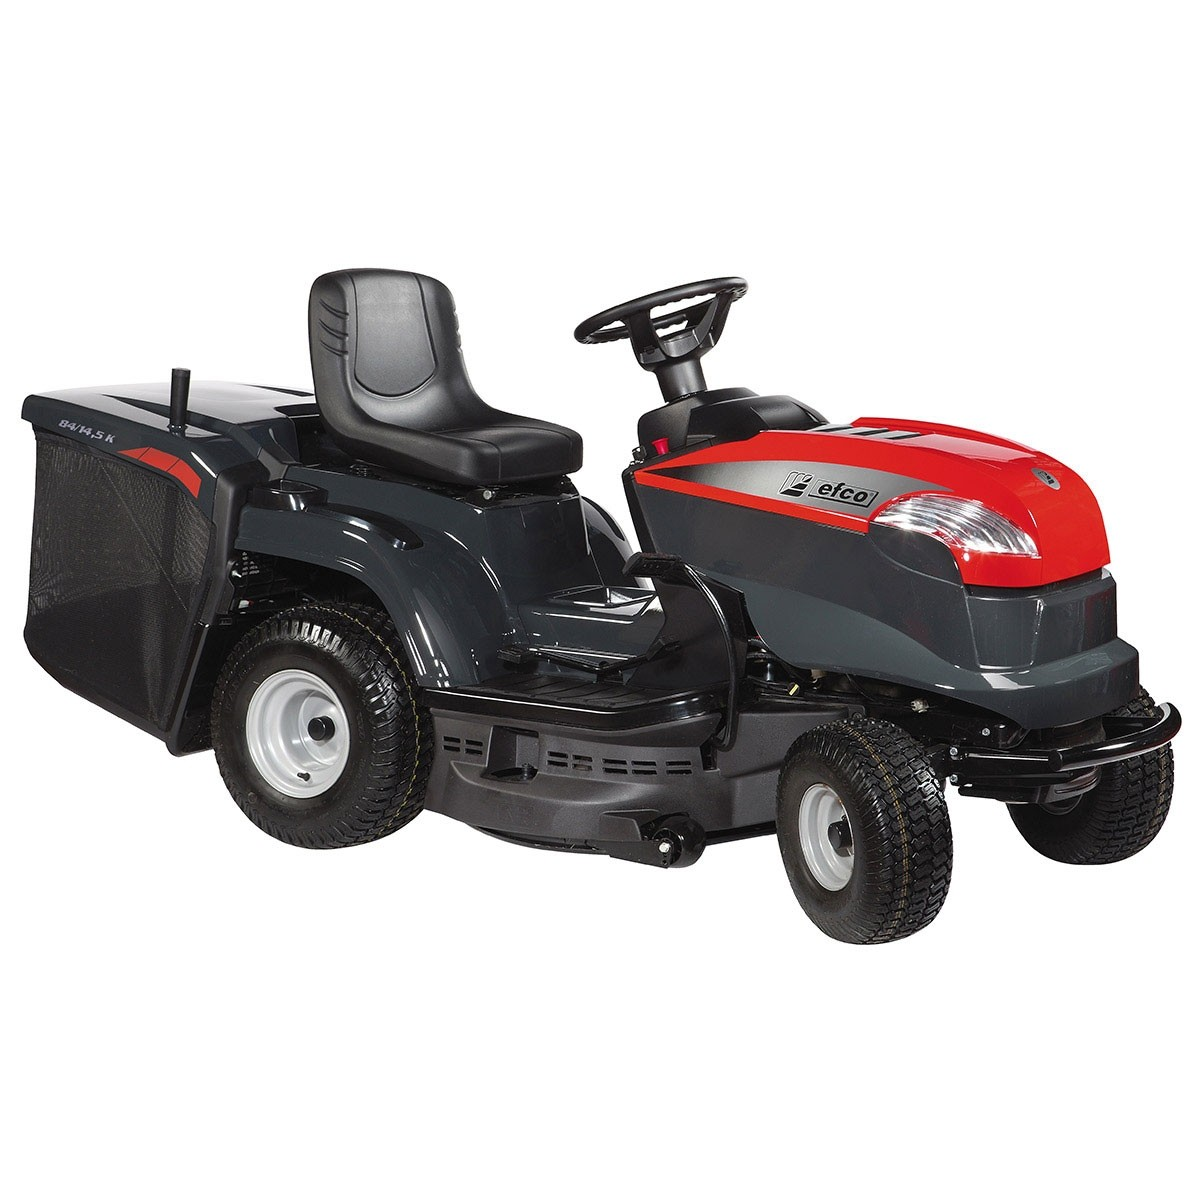 Efco EF84/14.5-KH Lawn Tractor (LIMITED OFFER)